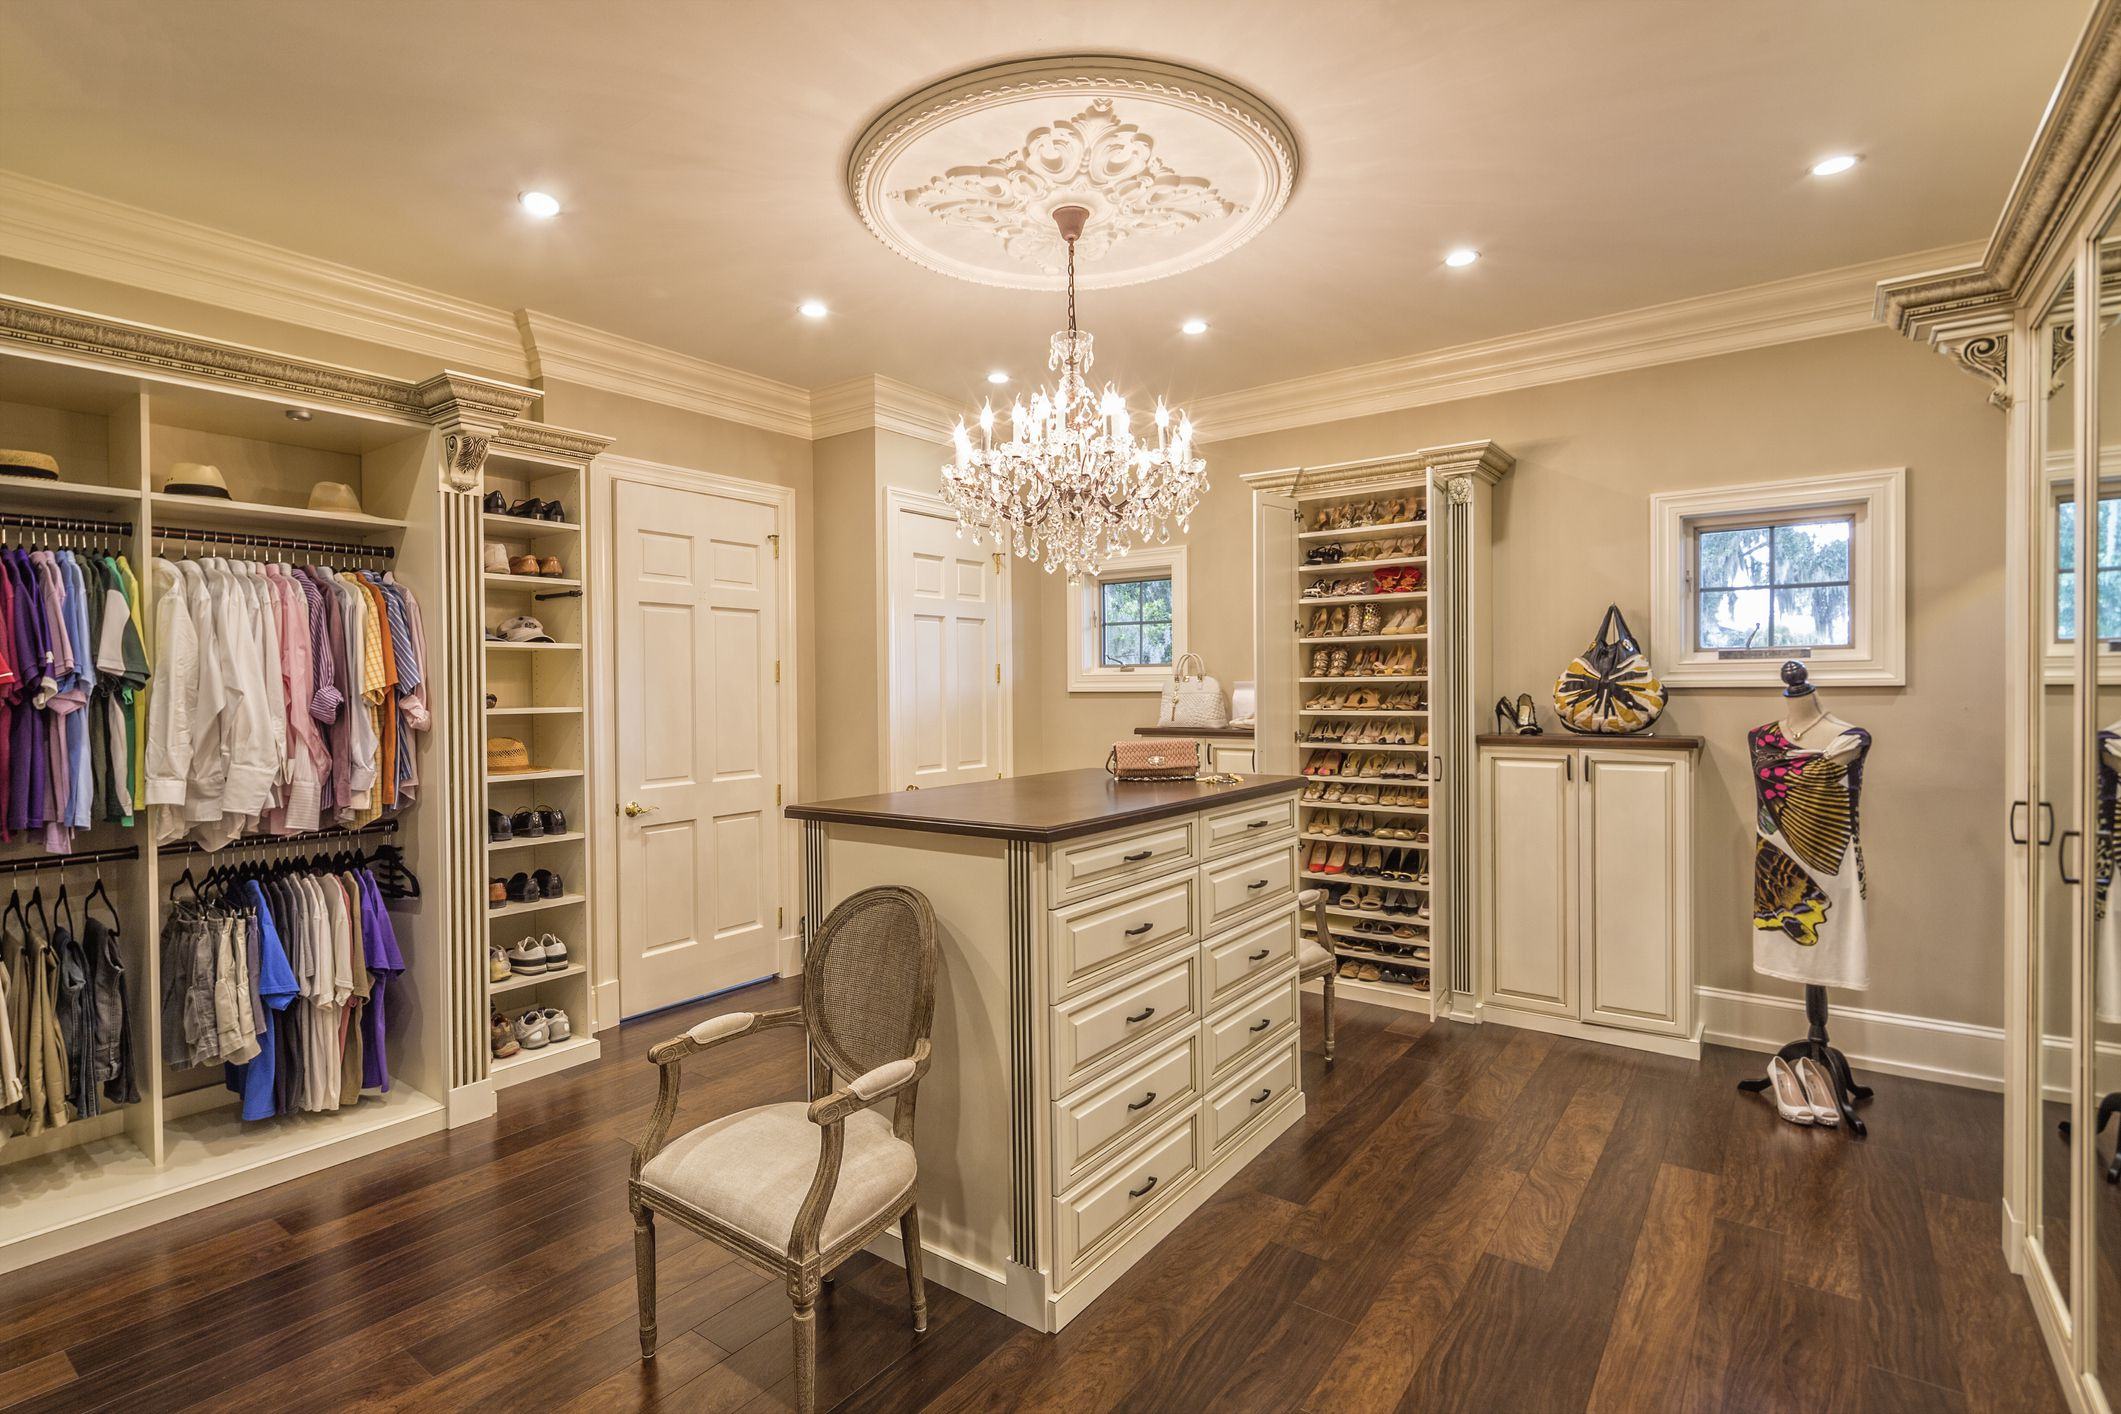 The 8 Best Closet Lighting Units of 2020 on Decorative Wall Sconces Non Electric Lights For Closets id=64753